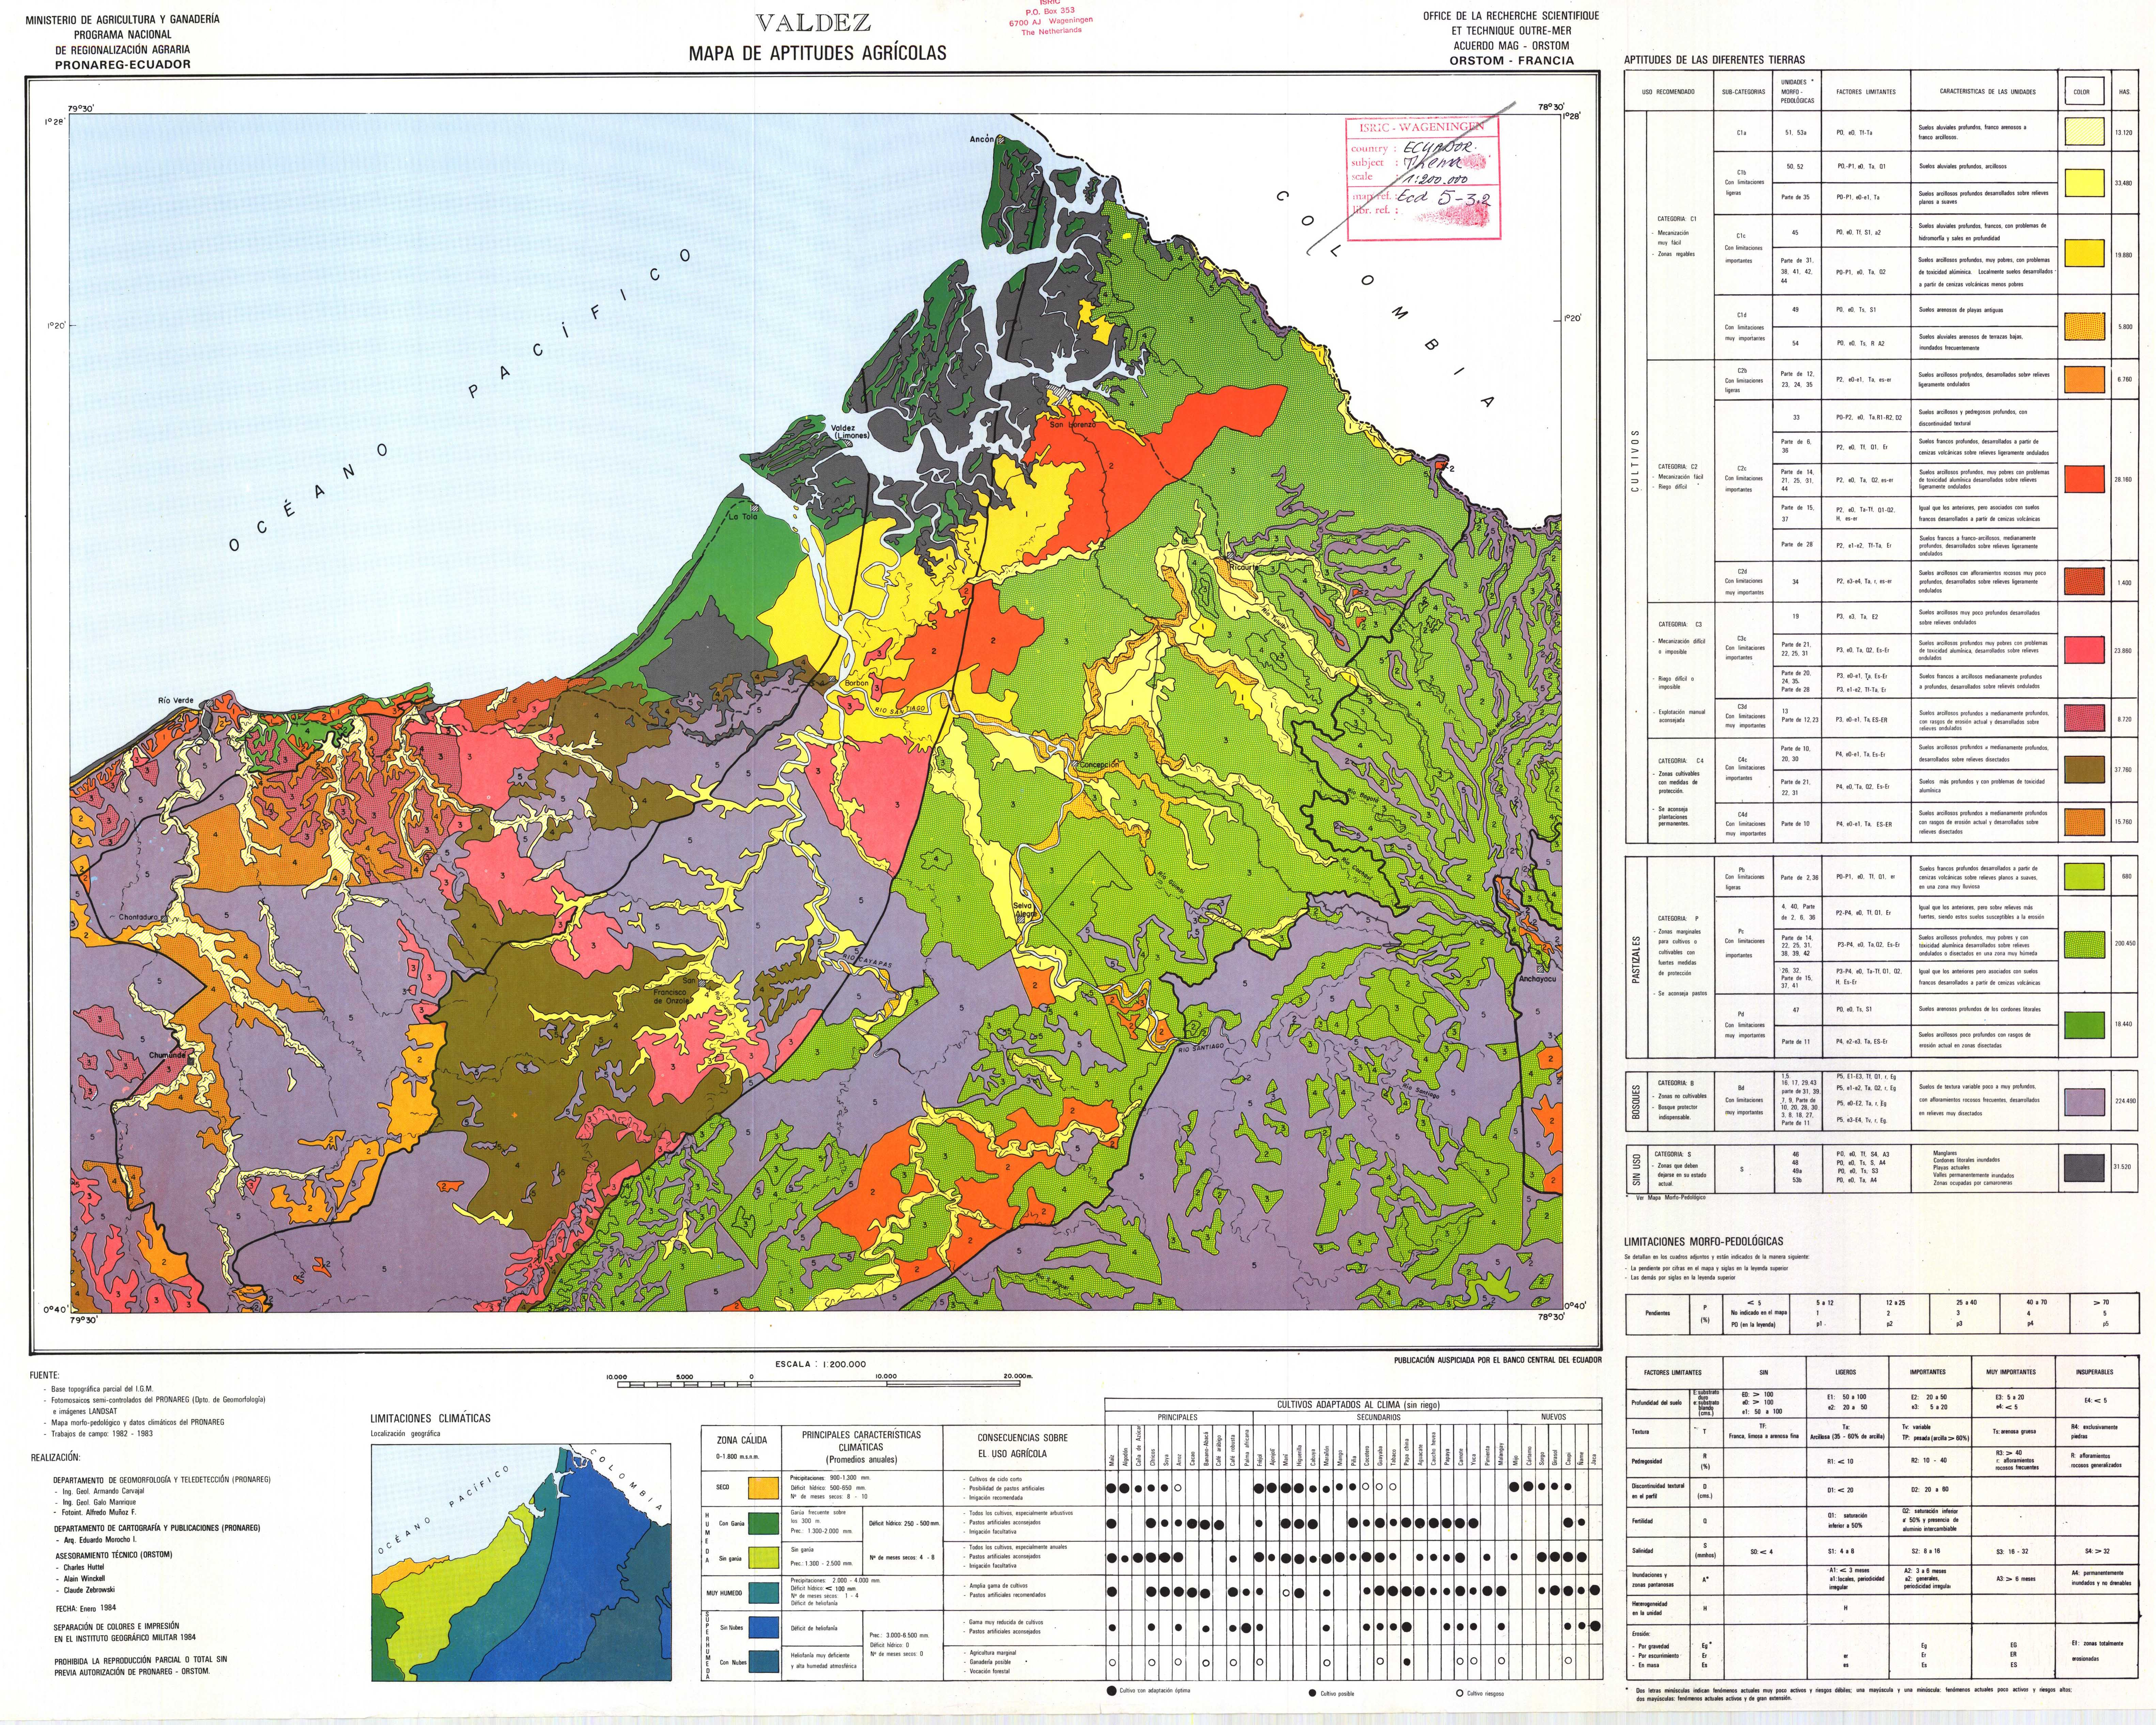 Agricultural suitability in the Valdez area 1984